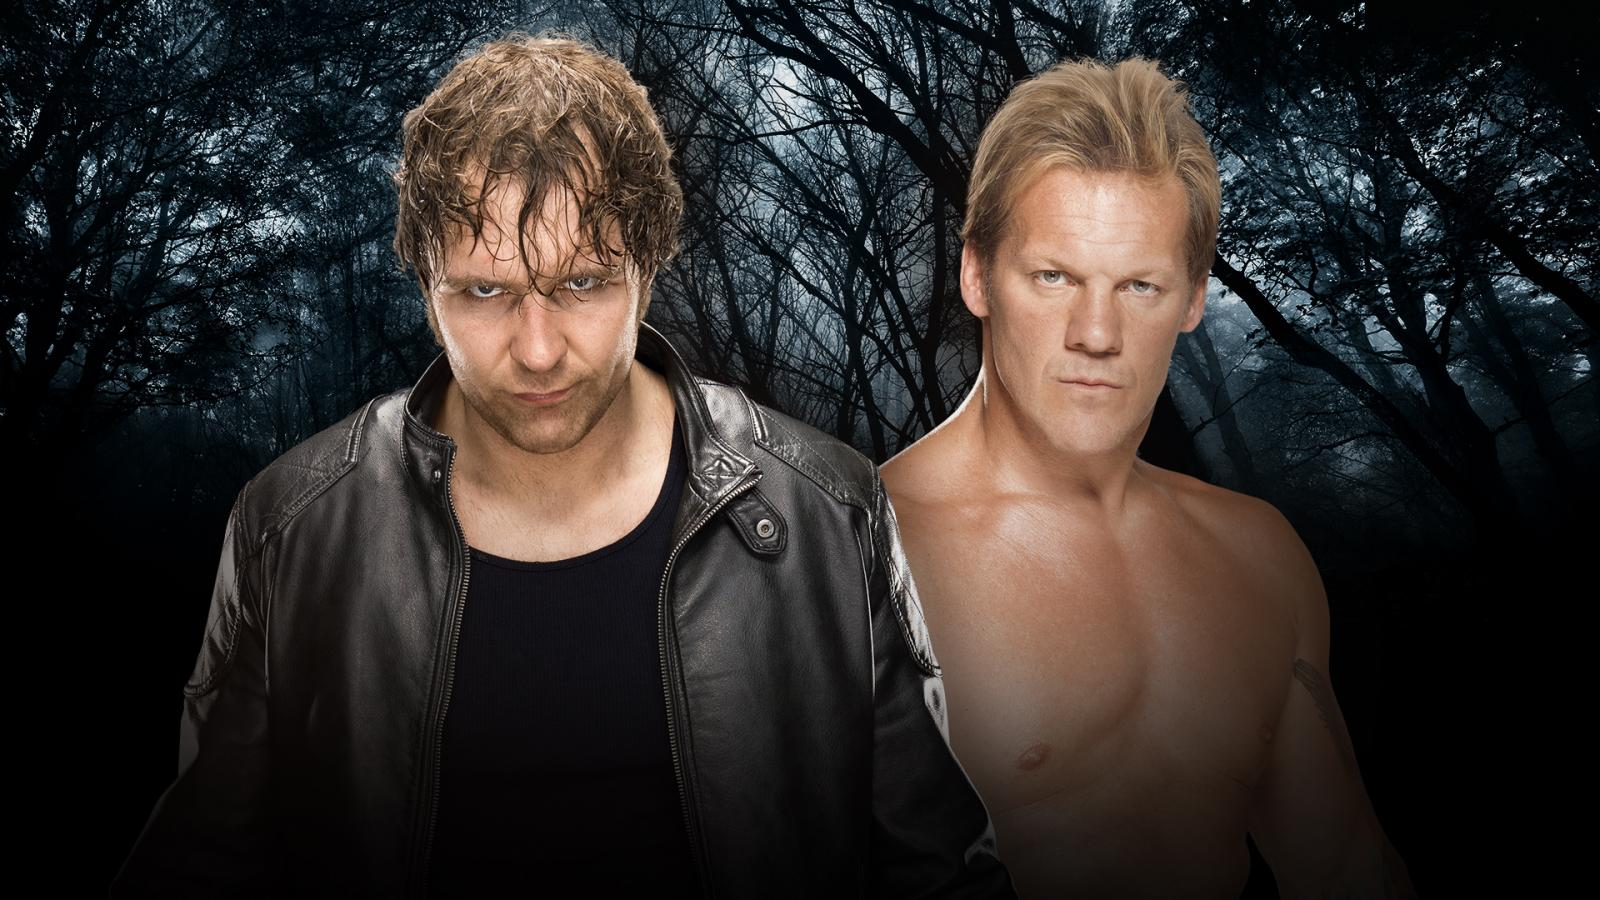 WWE Payback - Dean Ambrose Vs. Chris Jericho